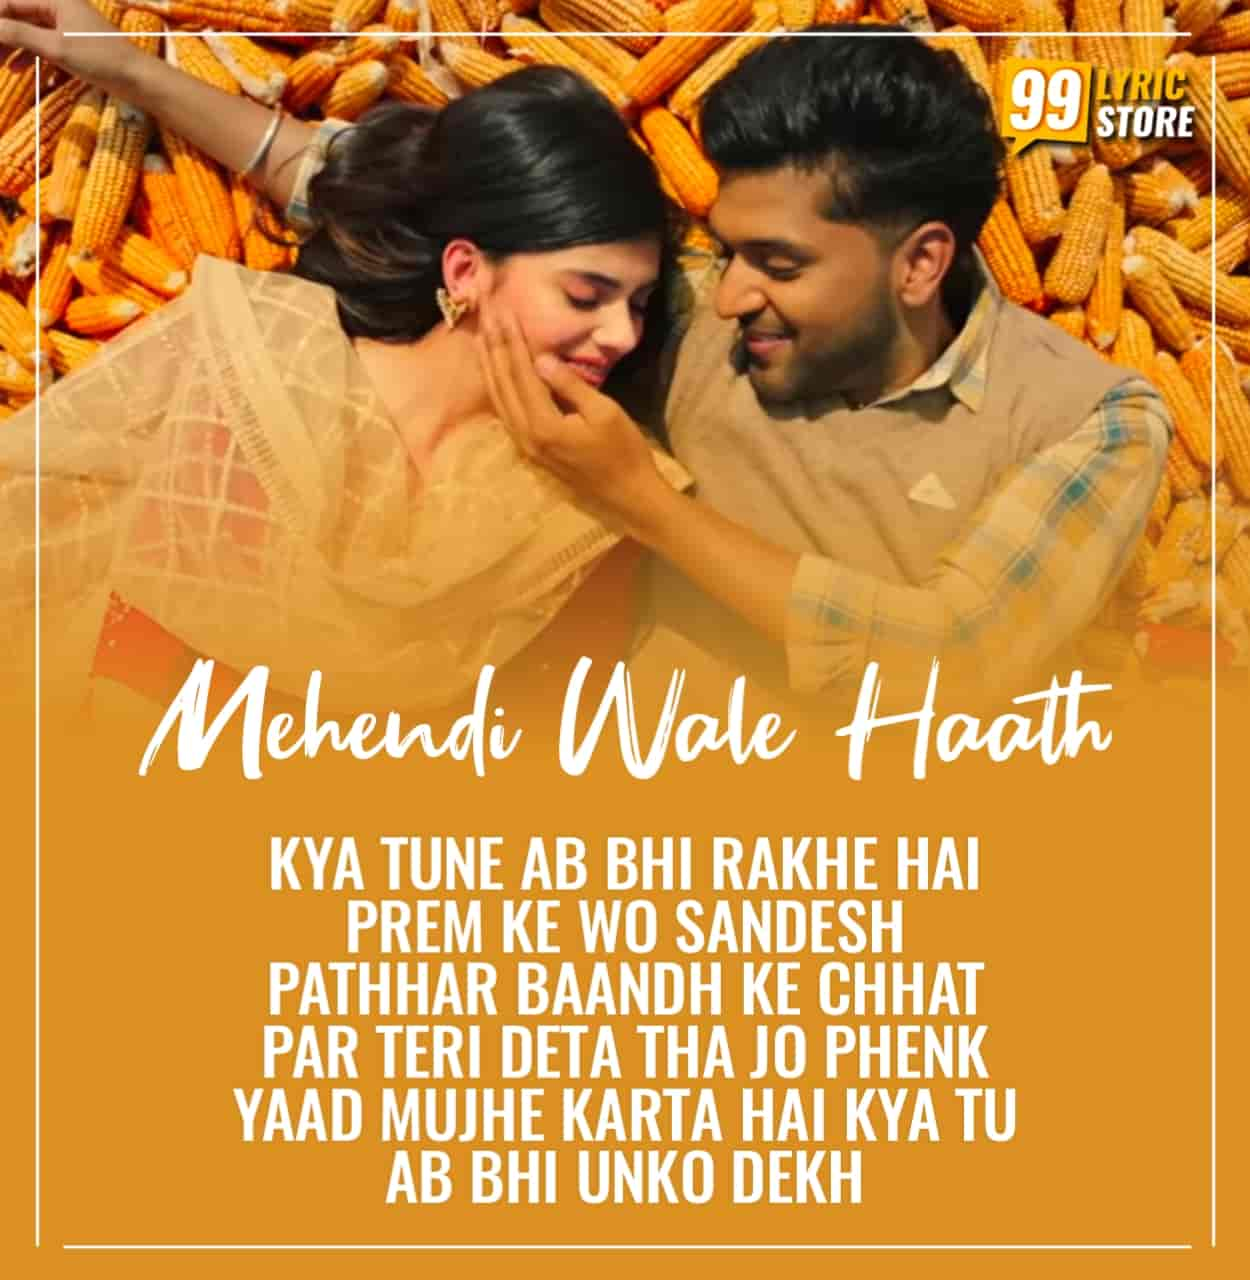 A very talented iconic punjabi artist Guru Randhawa come back again with a beautiful song which is titled Mehendi Wale Haath which is about a army men life, sung by him.